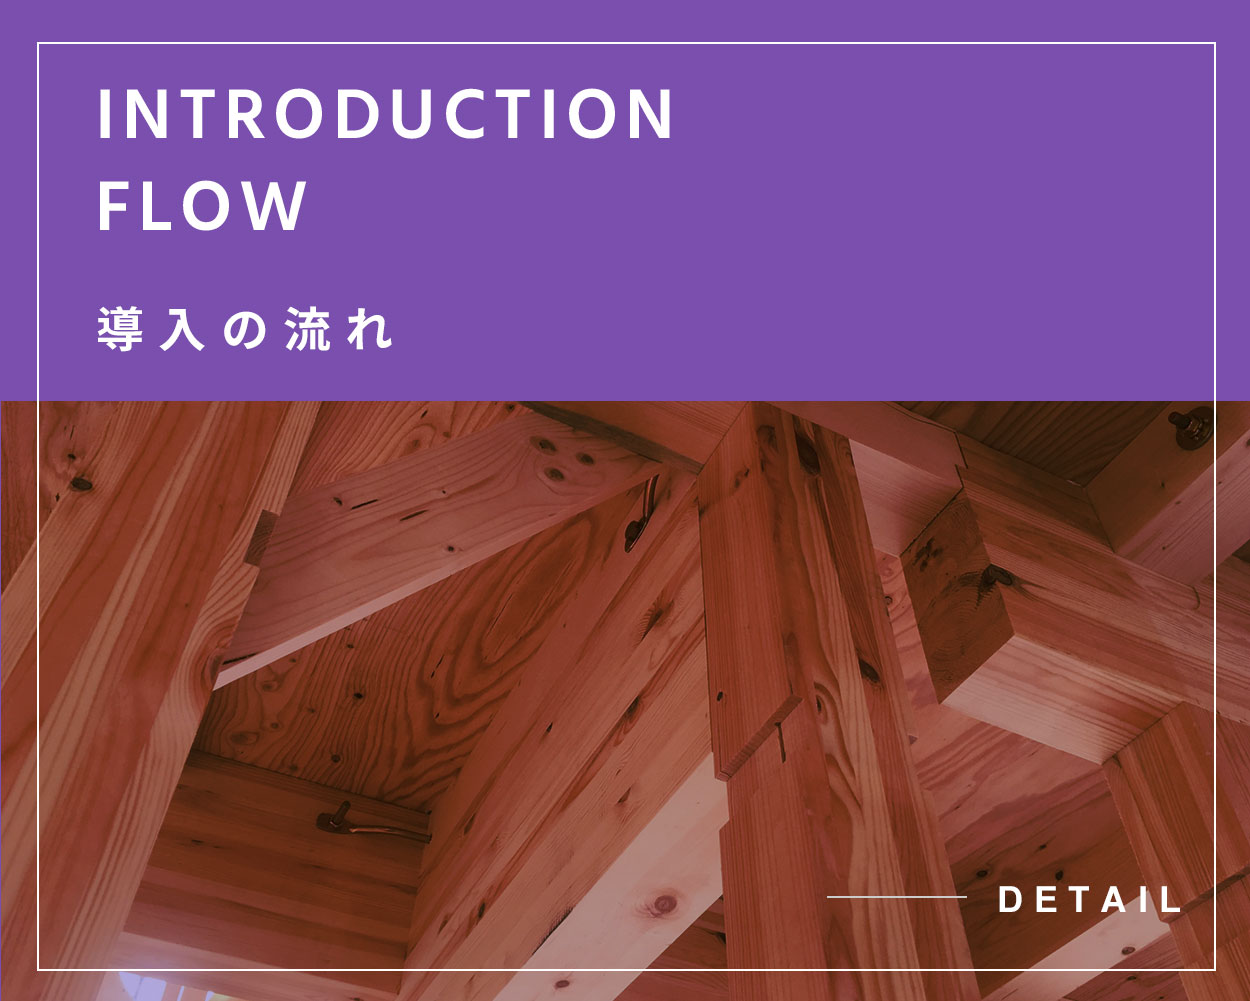 INTRODUCTION FLOW 導入の流れ